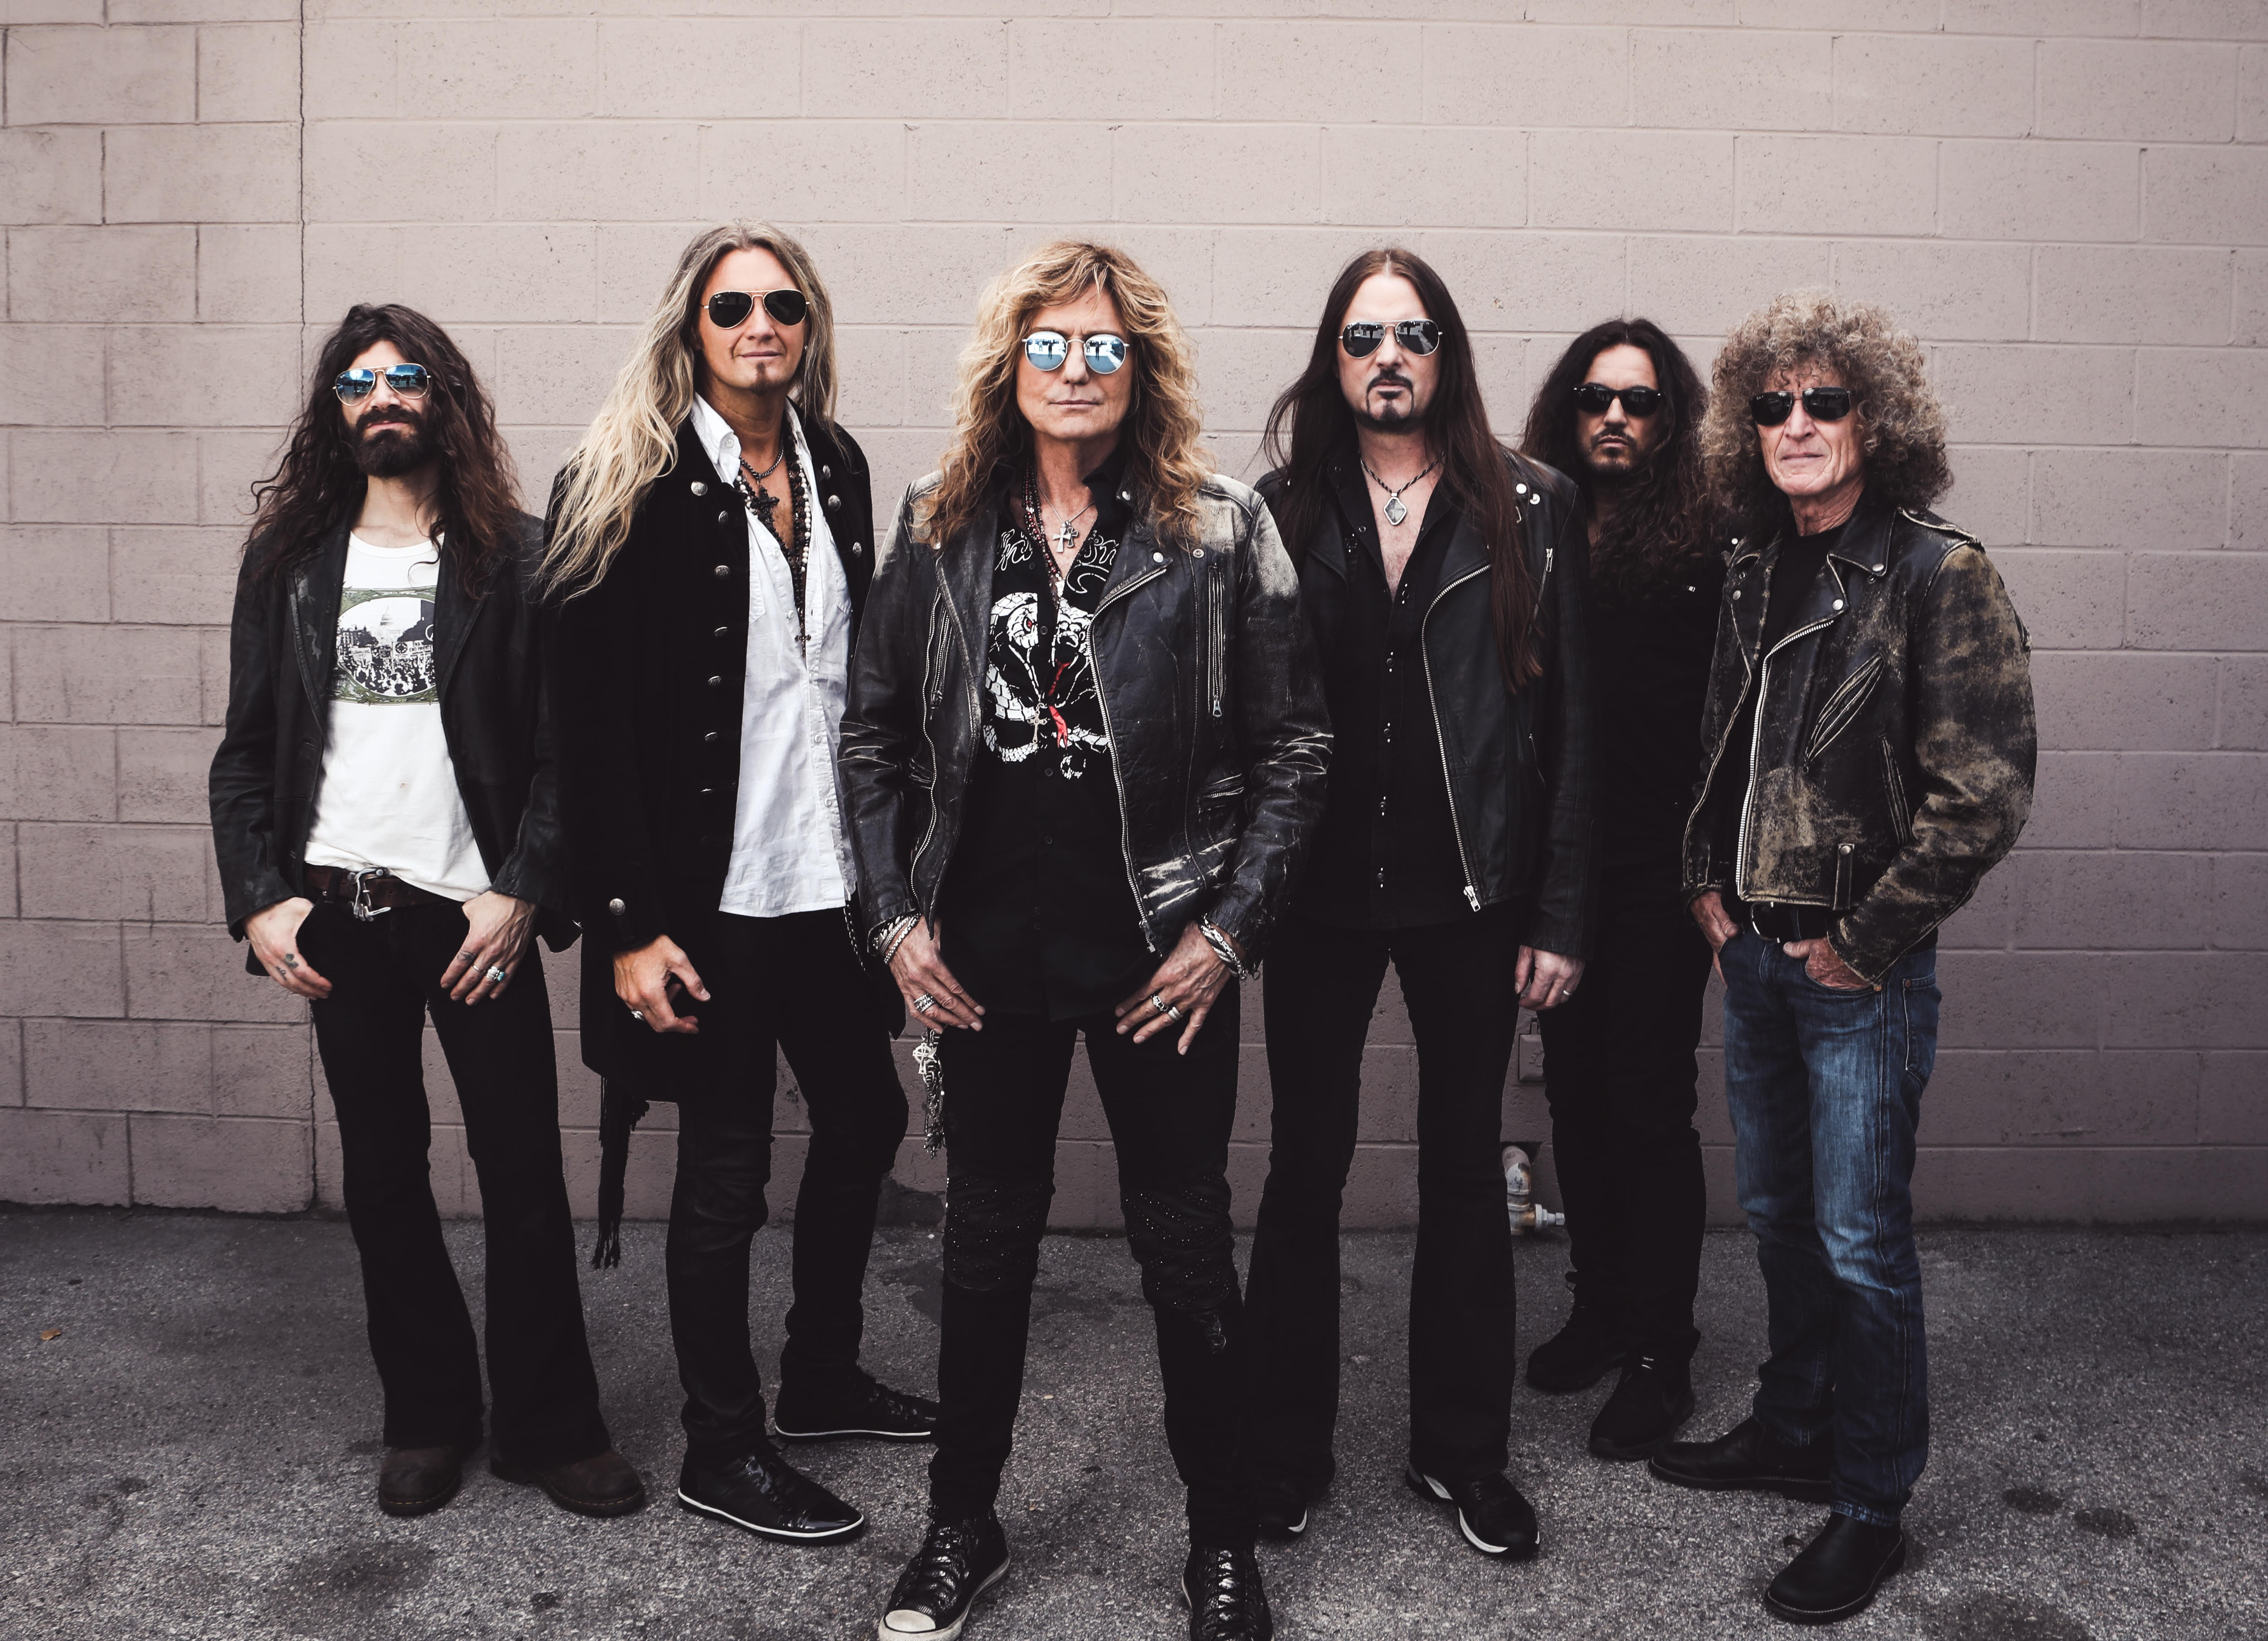 In Advance of Next Week's Show at the Agora, Whitesnake ...